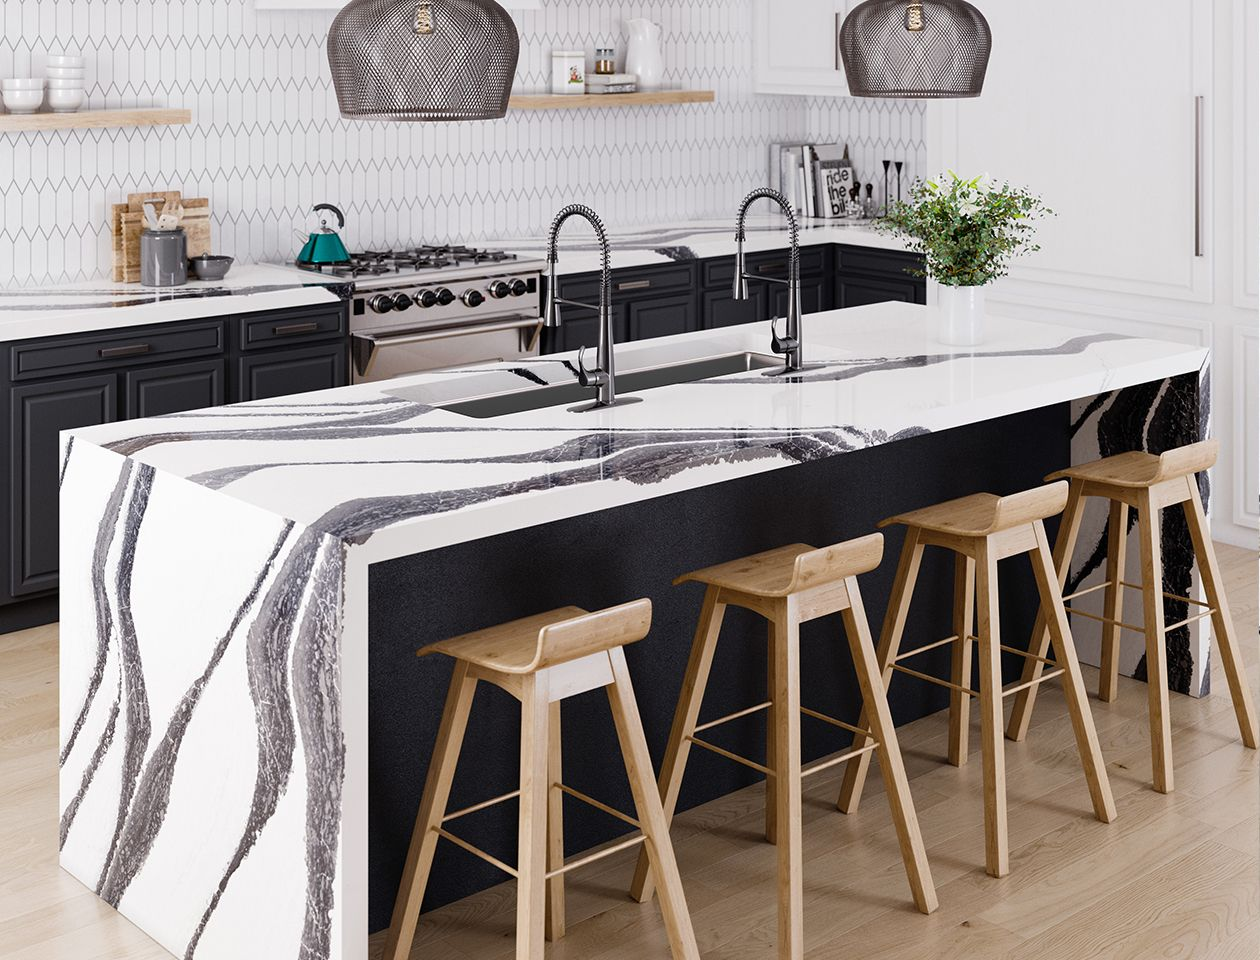 Kitchen Countertop Inspiration For Your Next Remodel Real Simple